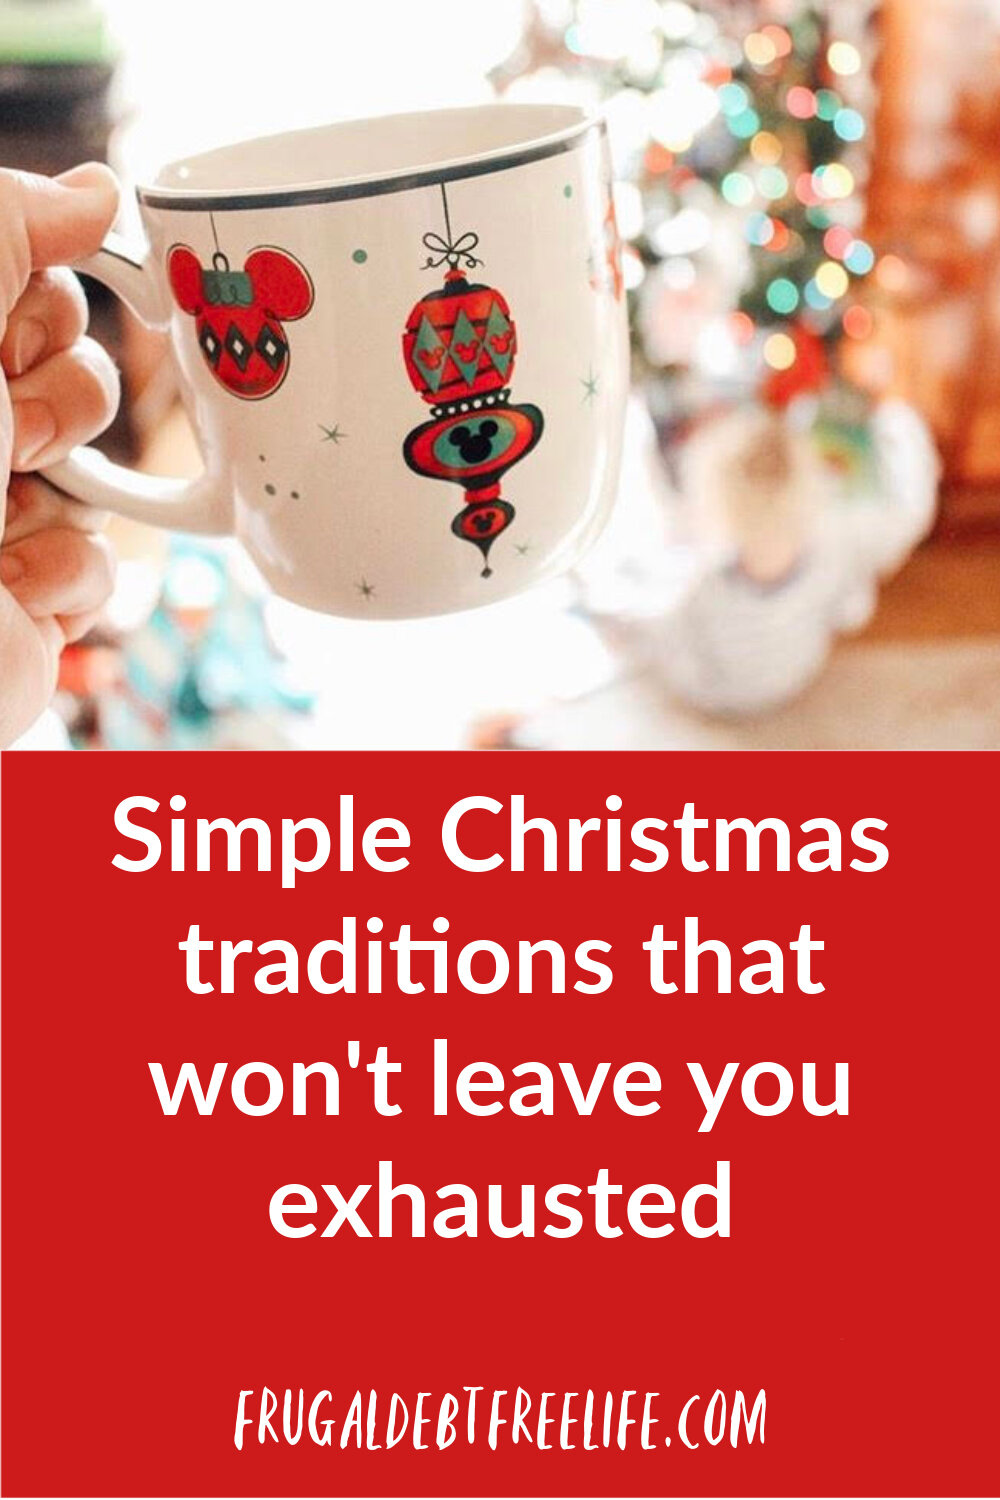 simple christmas traditions that won't leave you exhausted.jpg